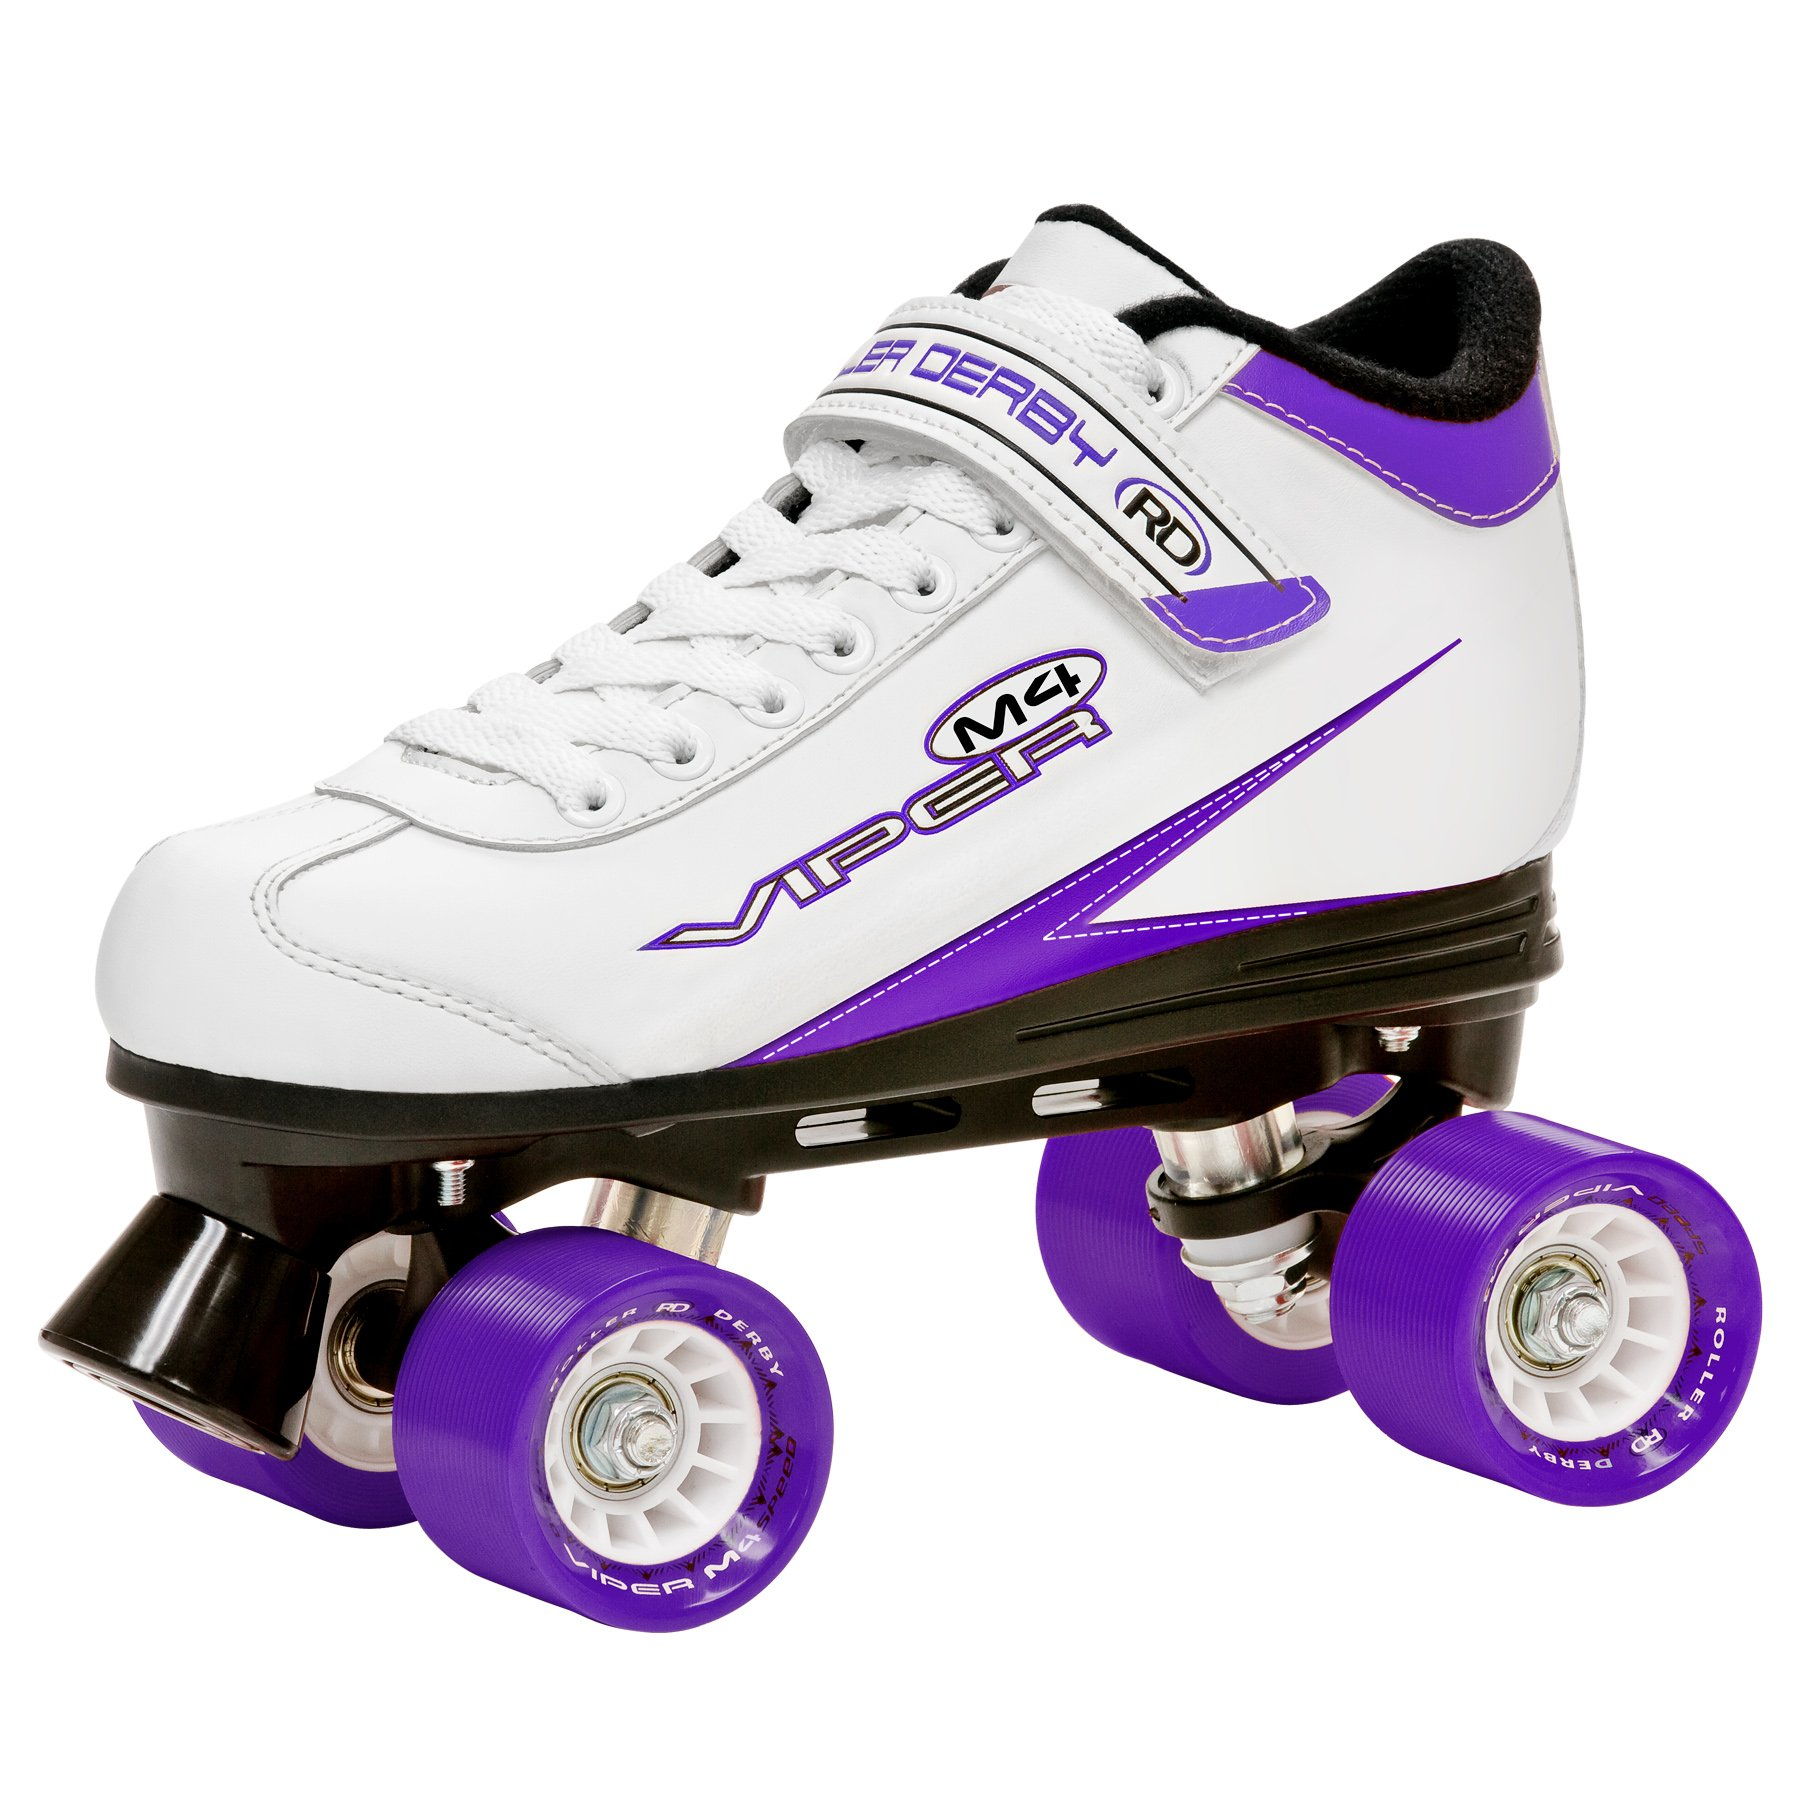 Roller Derby Women's Viper M4 Speed Quad Skate, Size 10